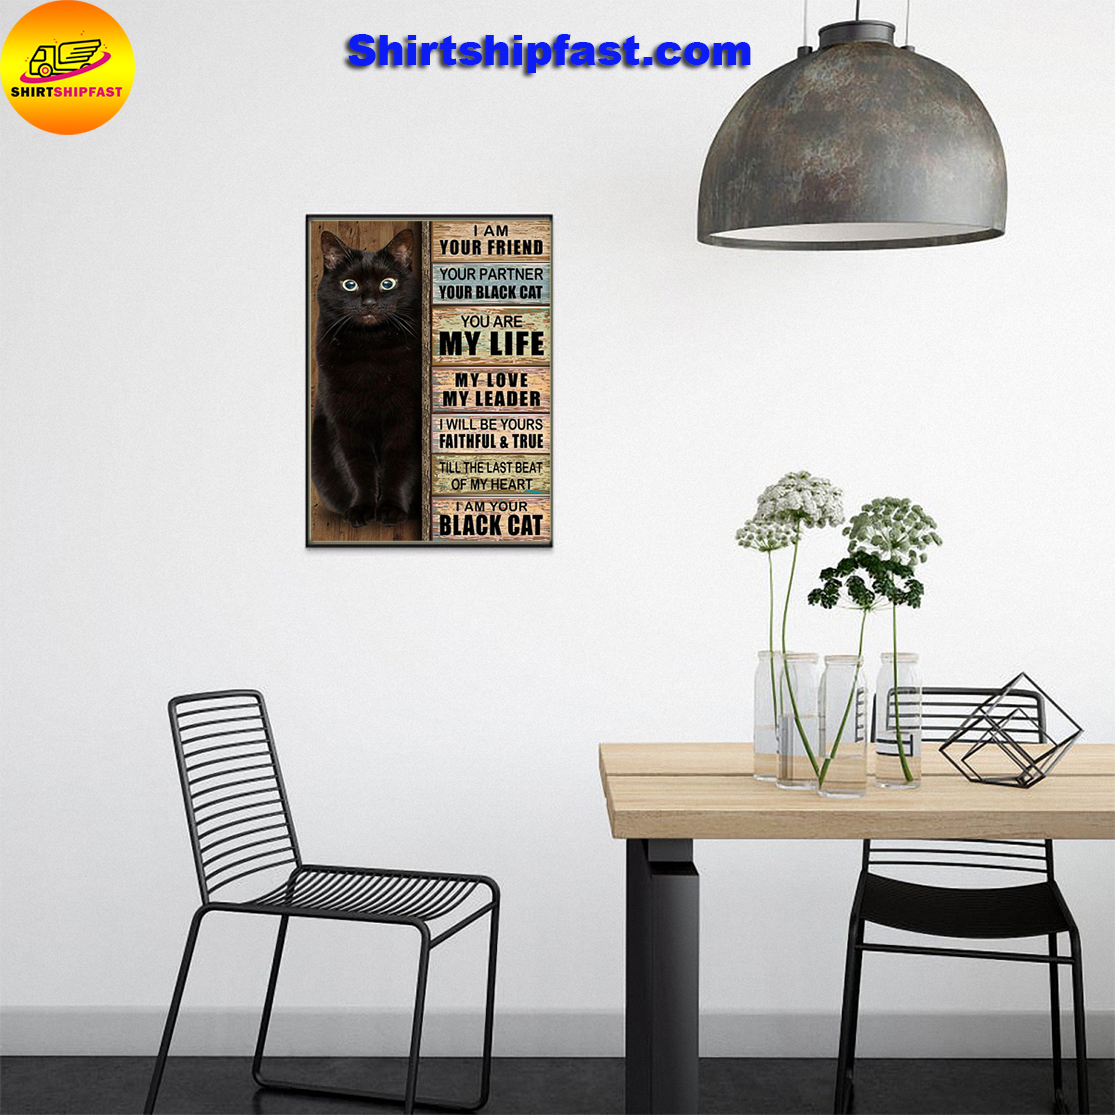 Your friend your partner your black cat poster - Picture 3